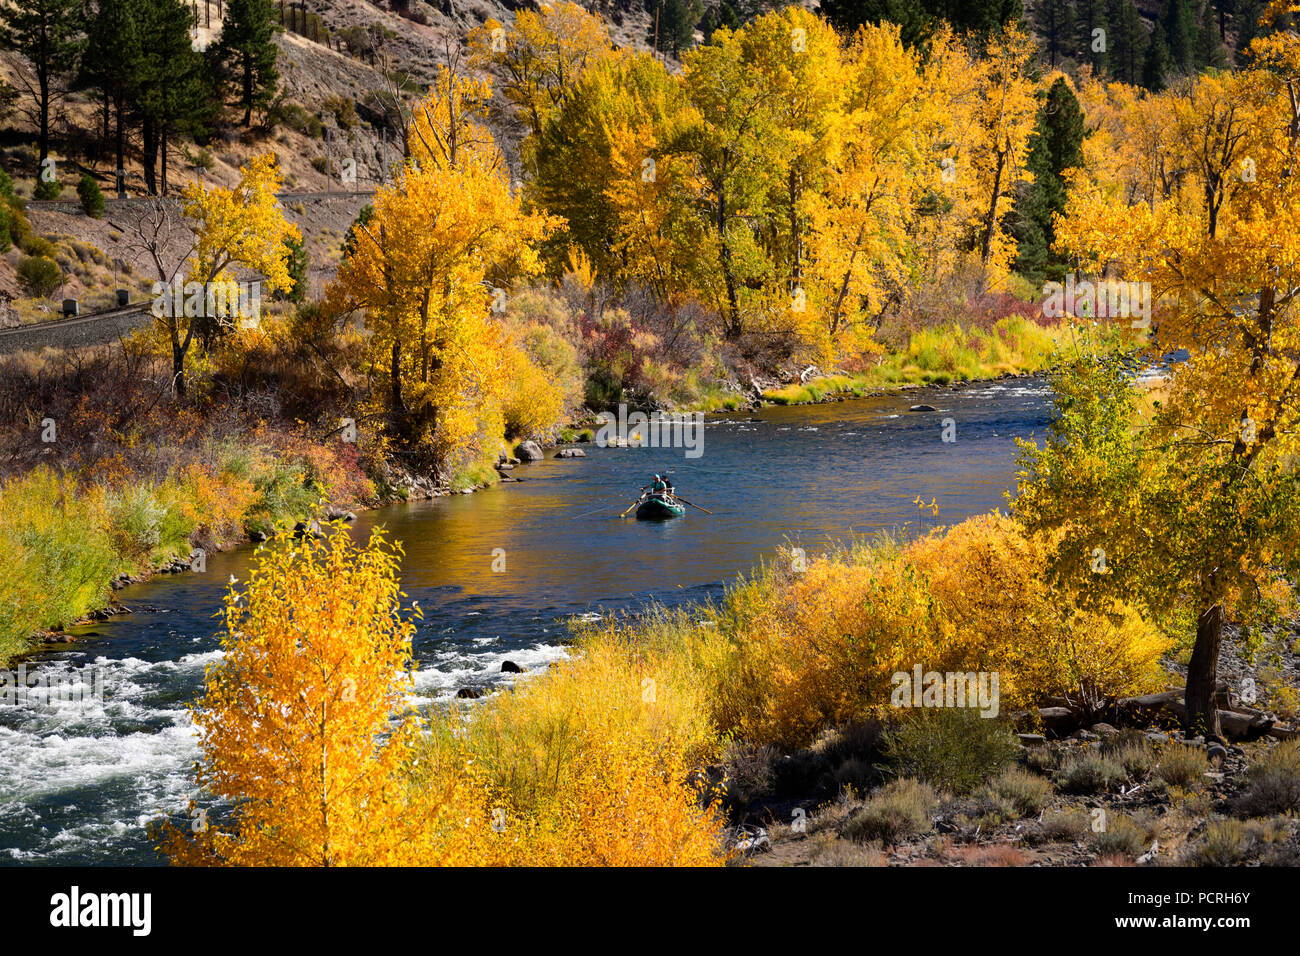 Fishing with Fall color along the Truckee River near Reno, Nevada 2018. - Stock Image